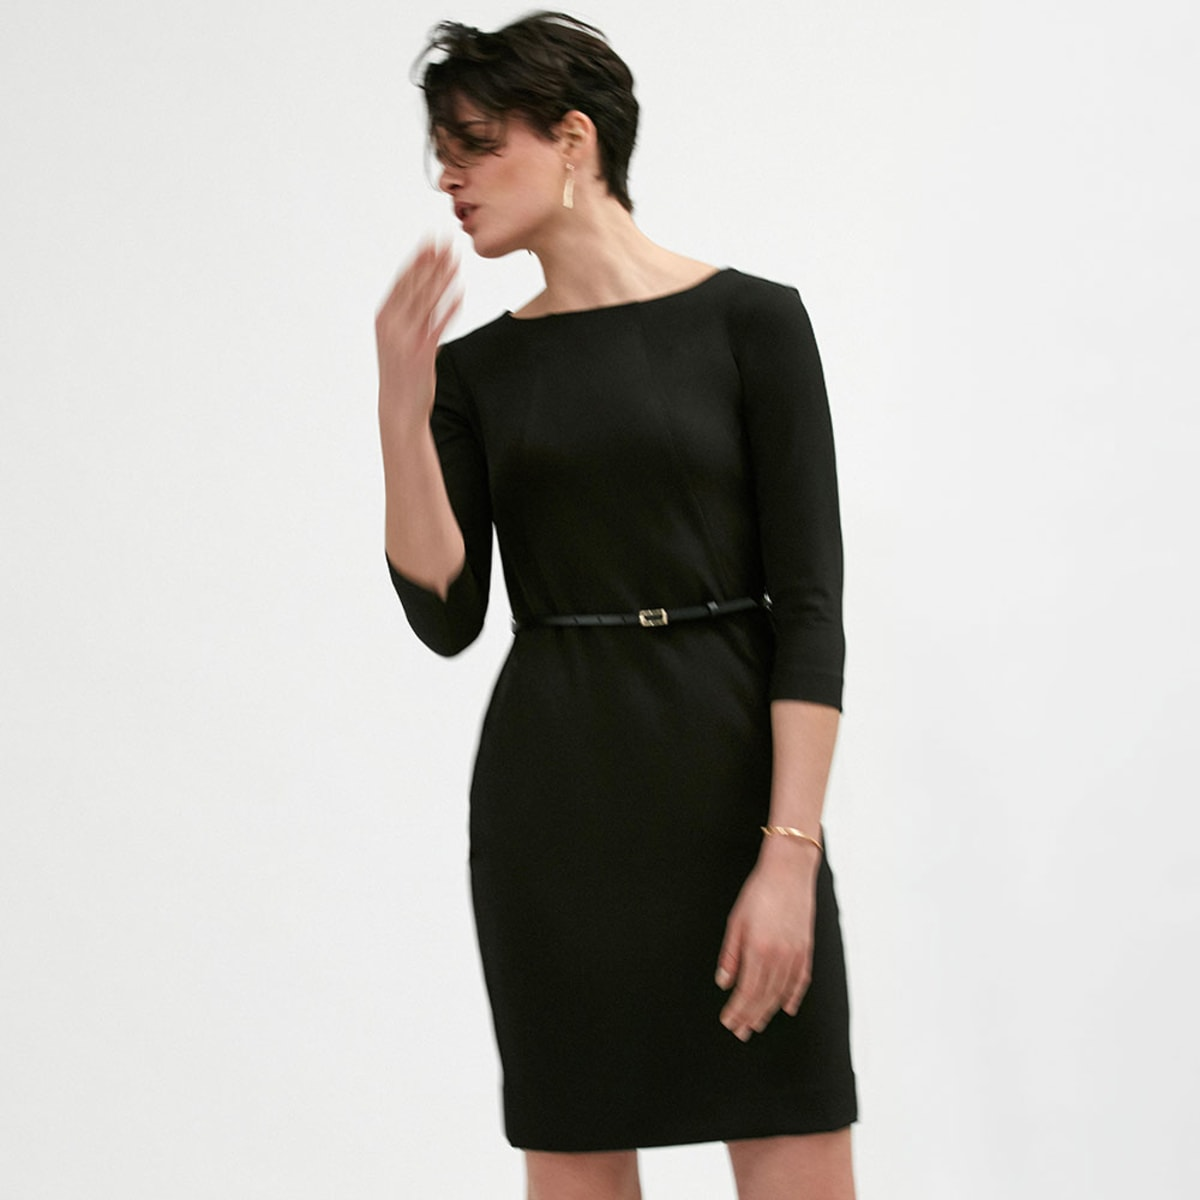 Mm Lafleur Live With Purpose Dress With Ease